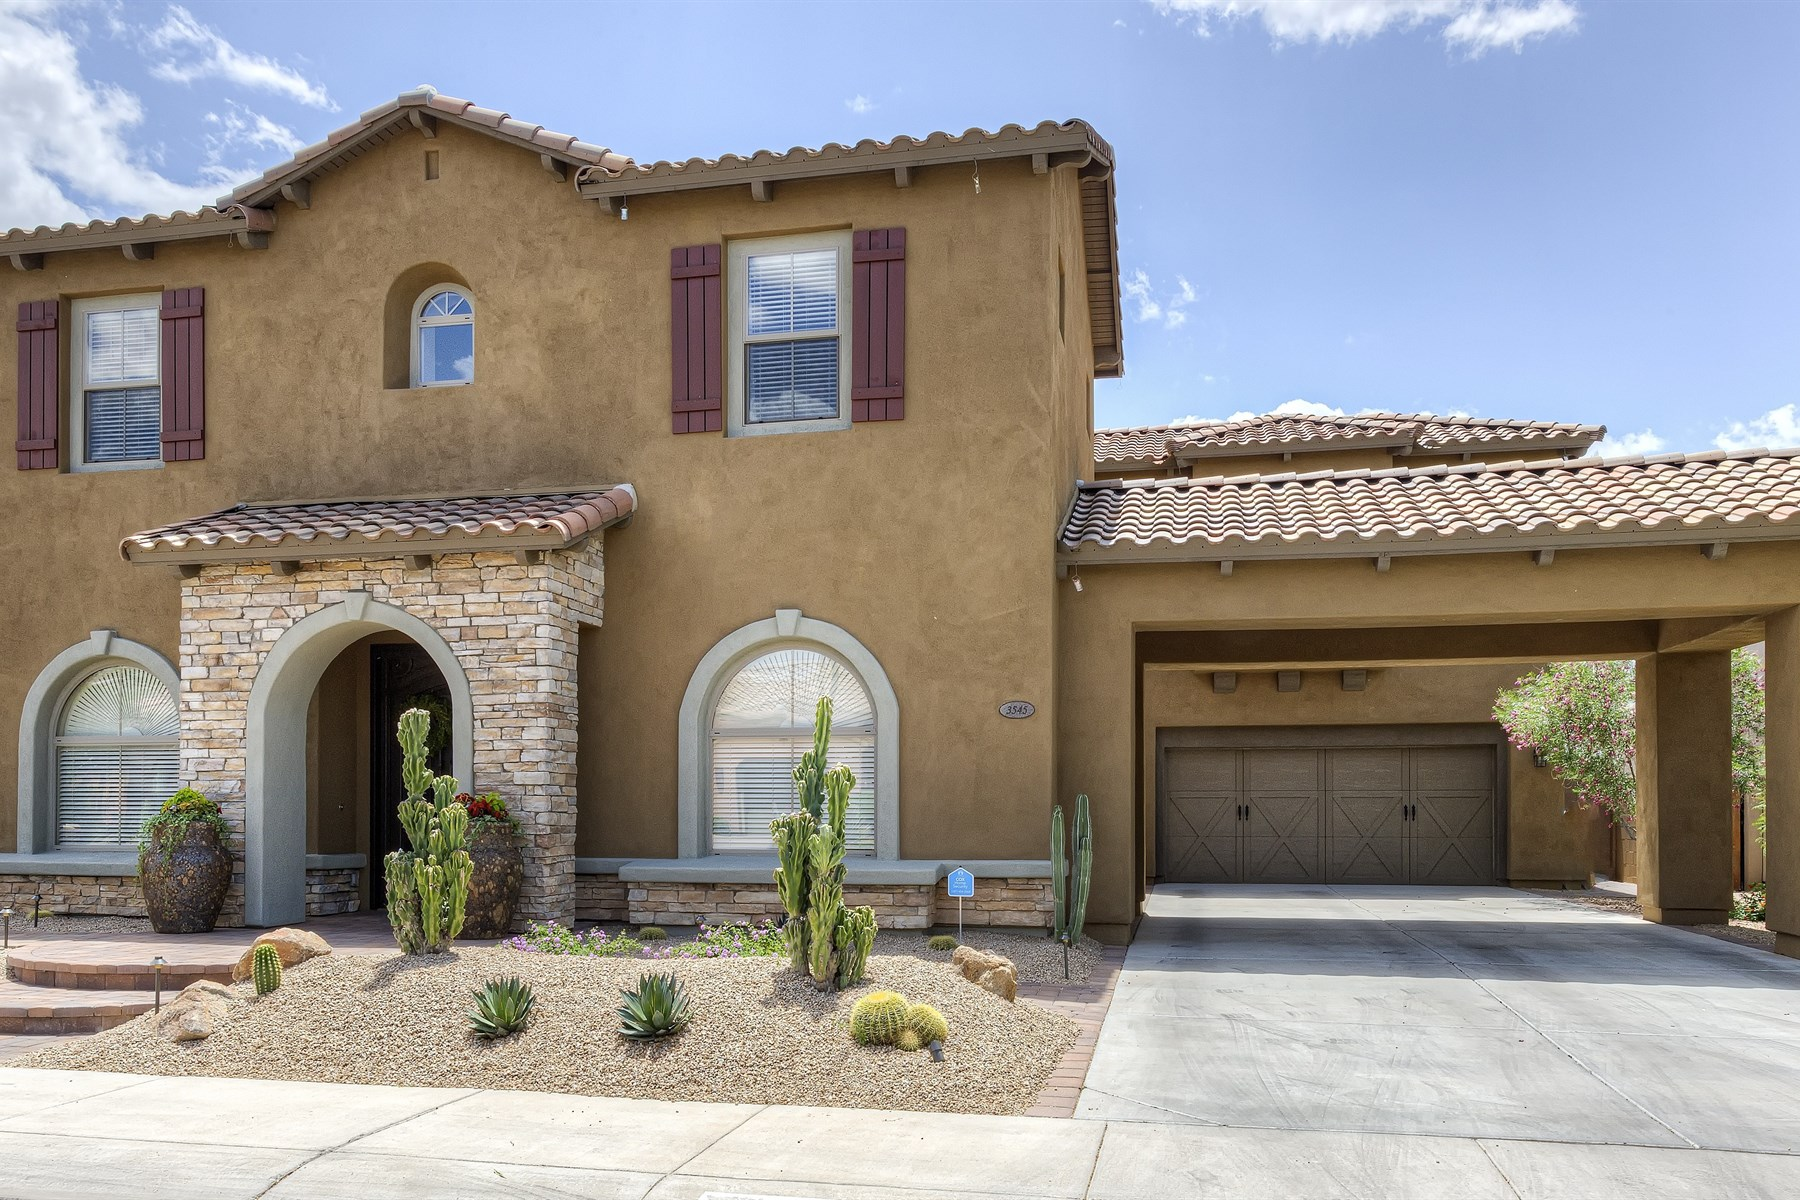 Casa Unifamiliar por un Venta en Immaculate, highly upgraded Aviano home. 3545 E EXPEDITION WAY Phoenix, Arizona 85050 Estados Unidos